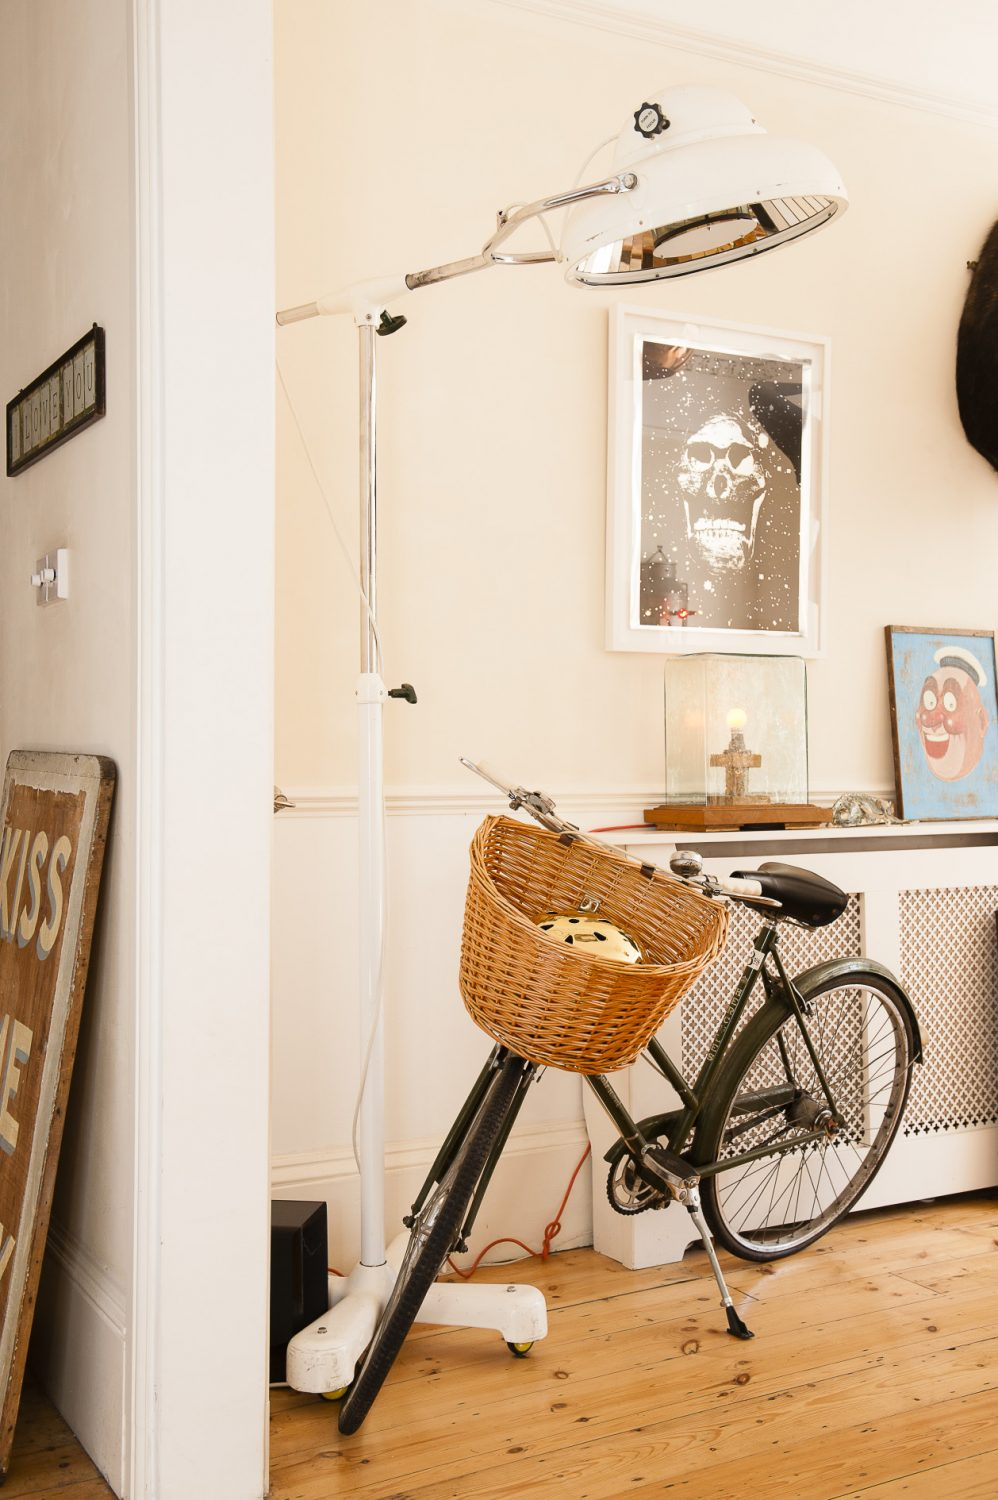 The bicycle is from Bell's Bicycles in Hastings Old Town and the picture of a sailor was from McCully & Crane